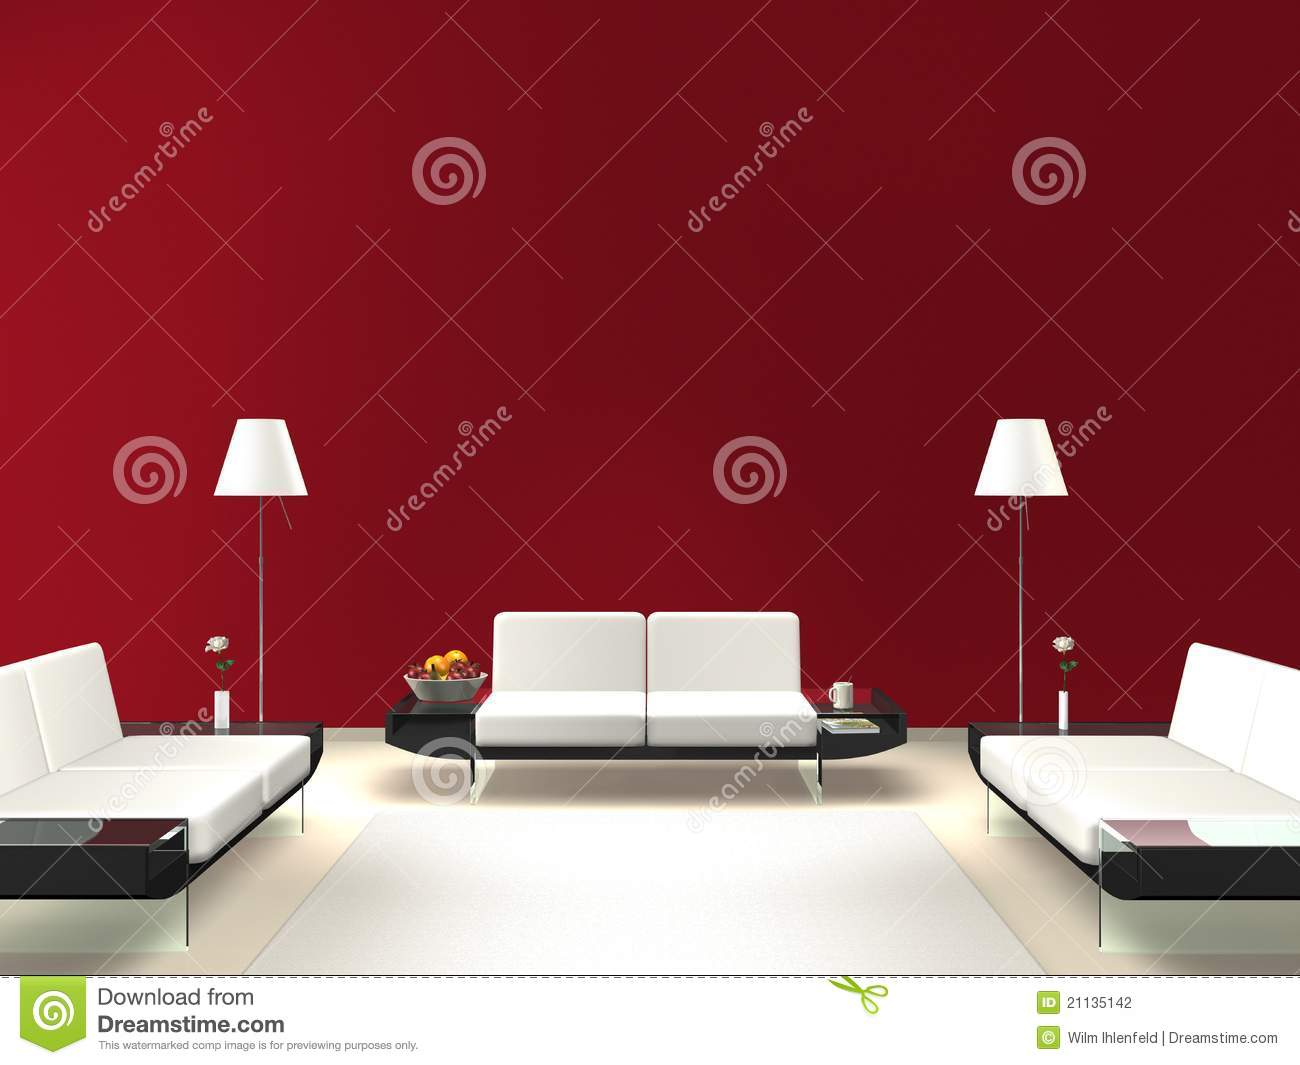 Rendering of a modern interior scene with space for wall decoration ...